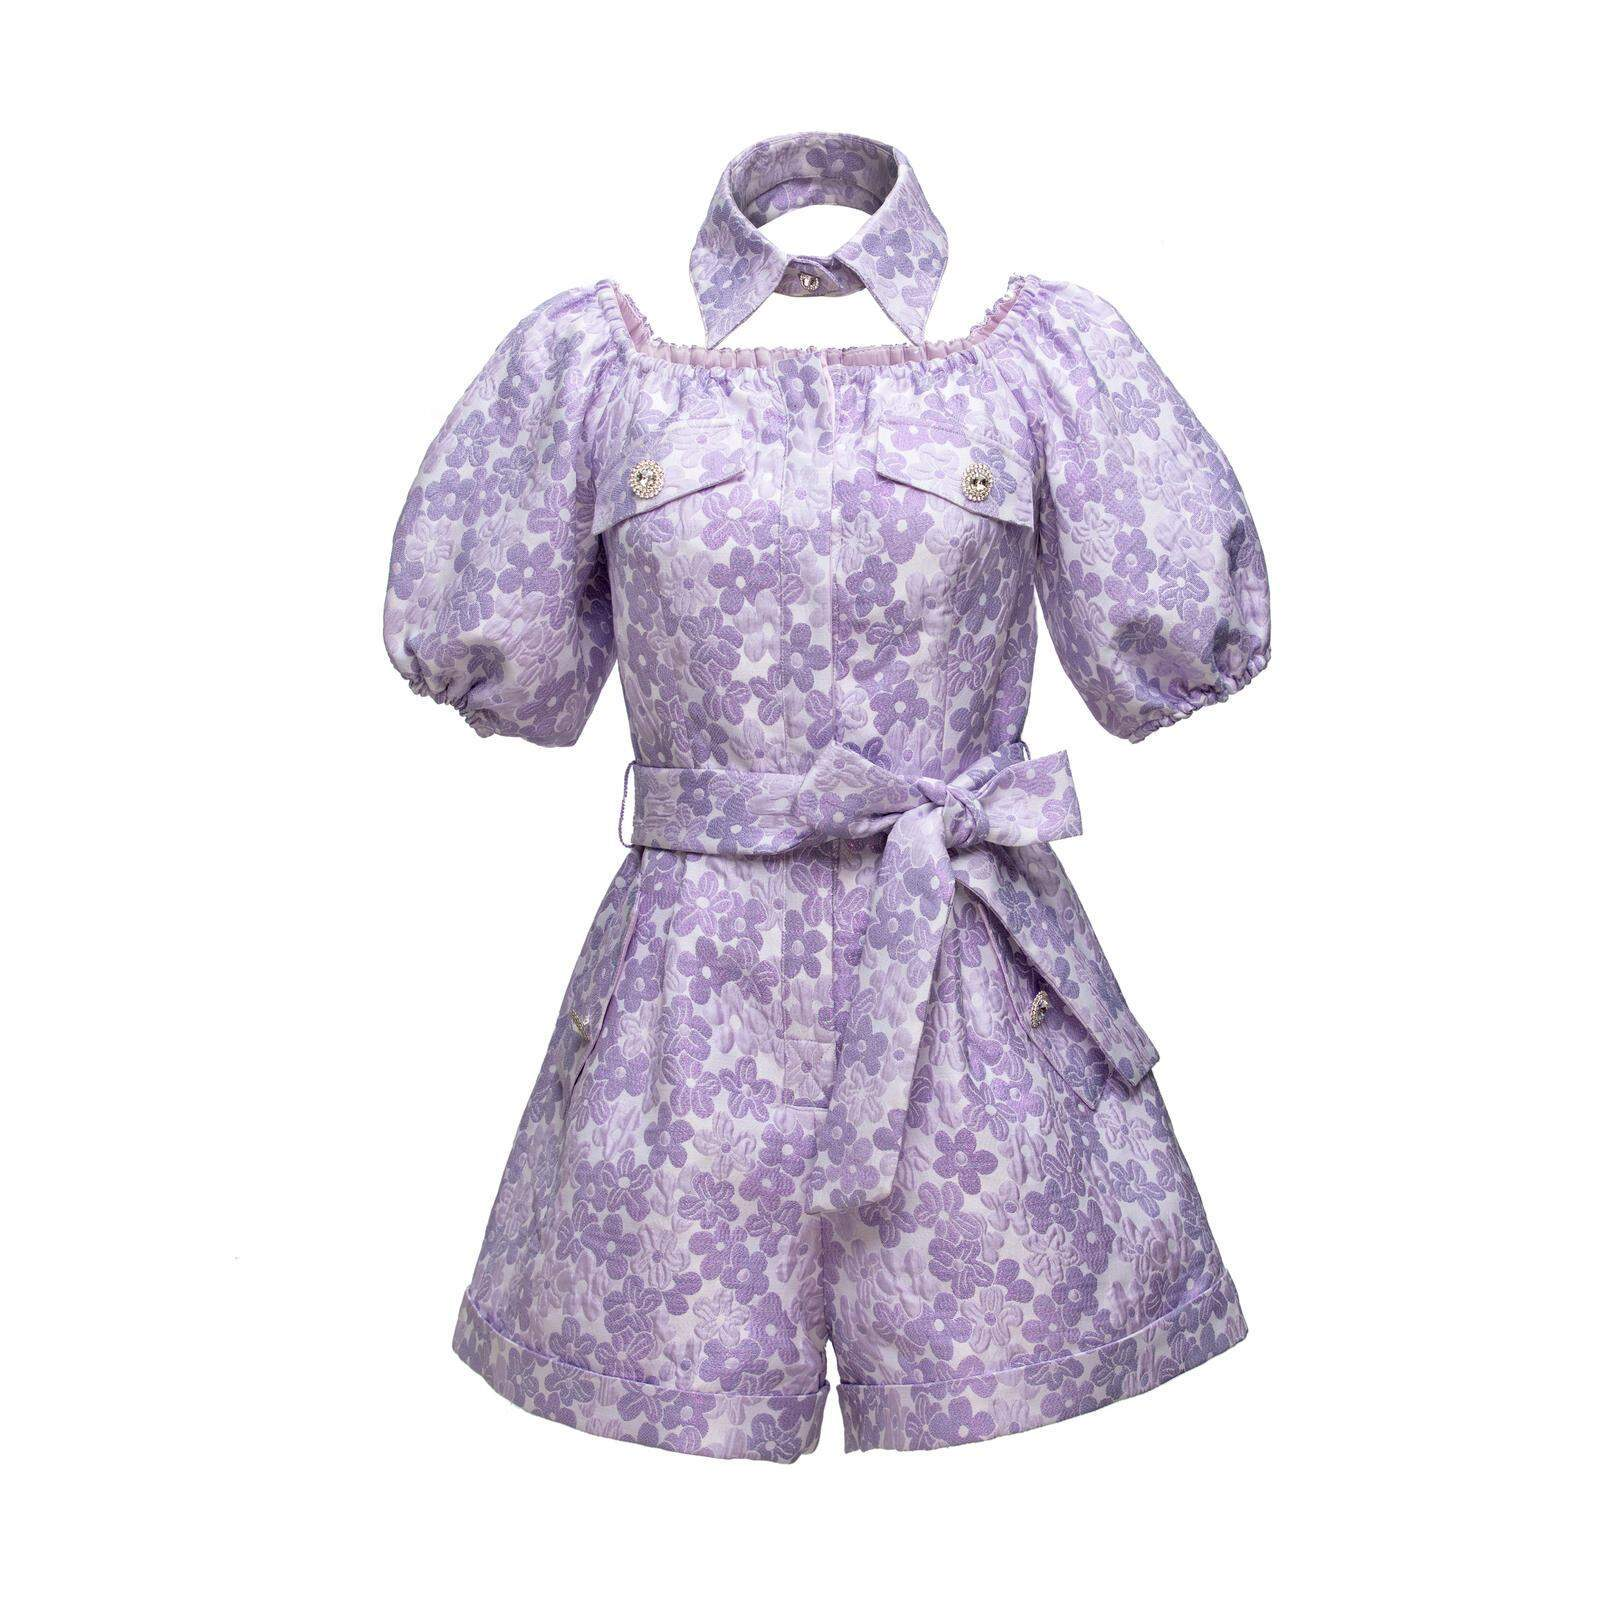 WARM AID Purple Jacquard Bodysuits | MADA IN CHINA